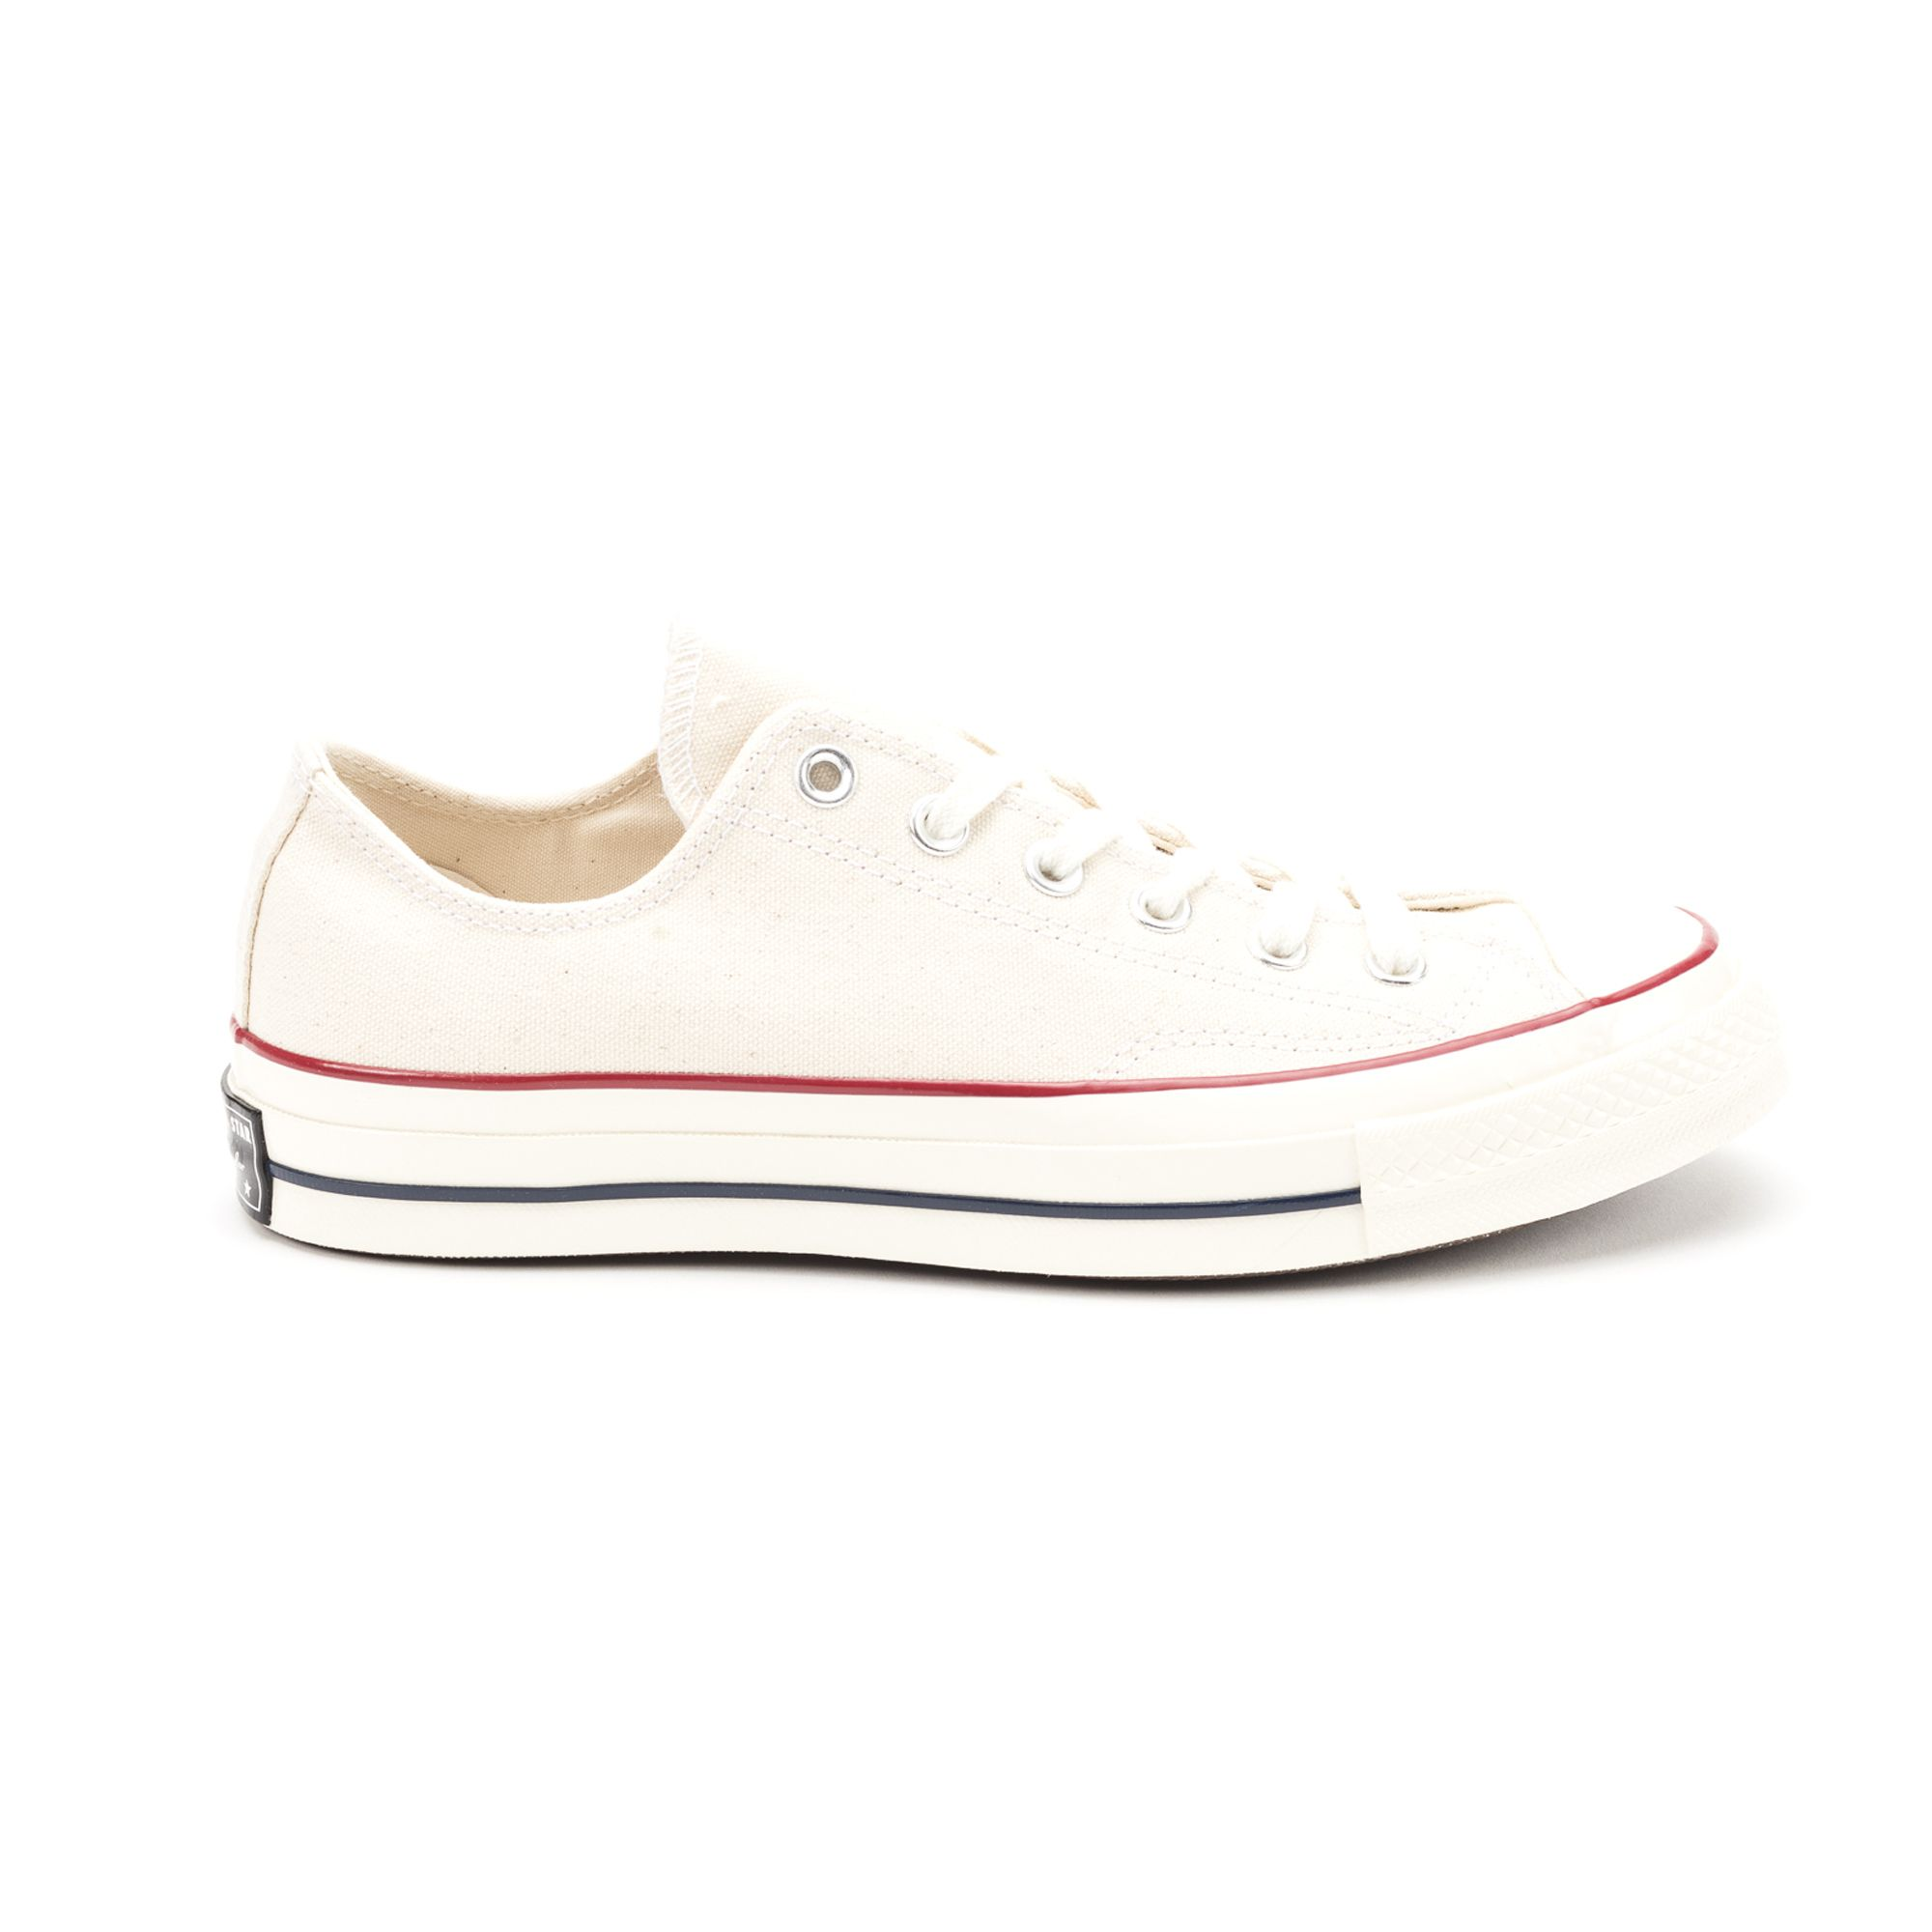 Converse Chuck Taylor All Star Low Top Sneaker In White/Red/Blue